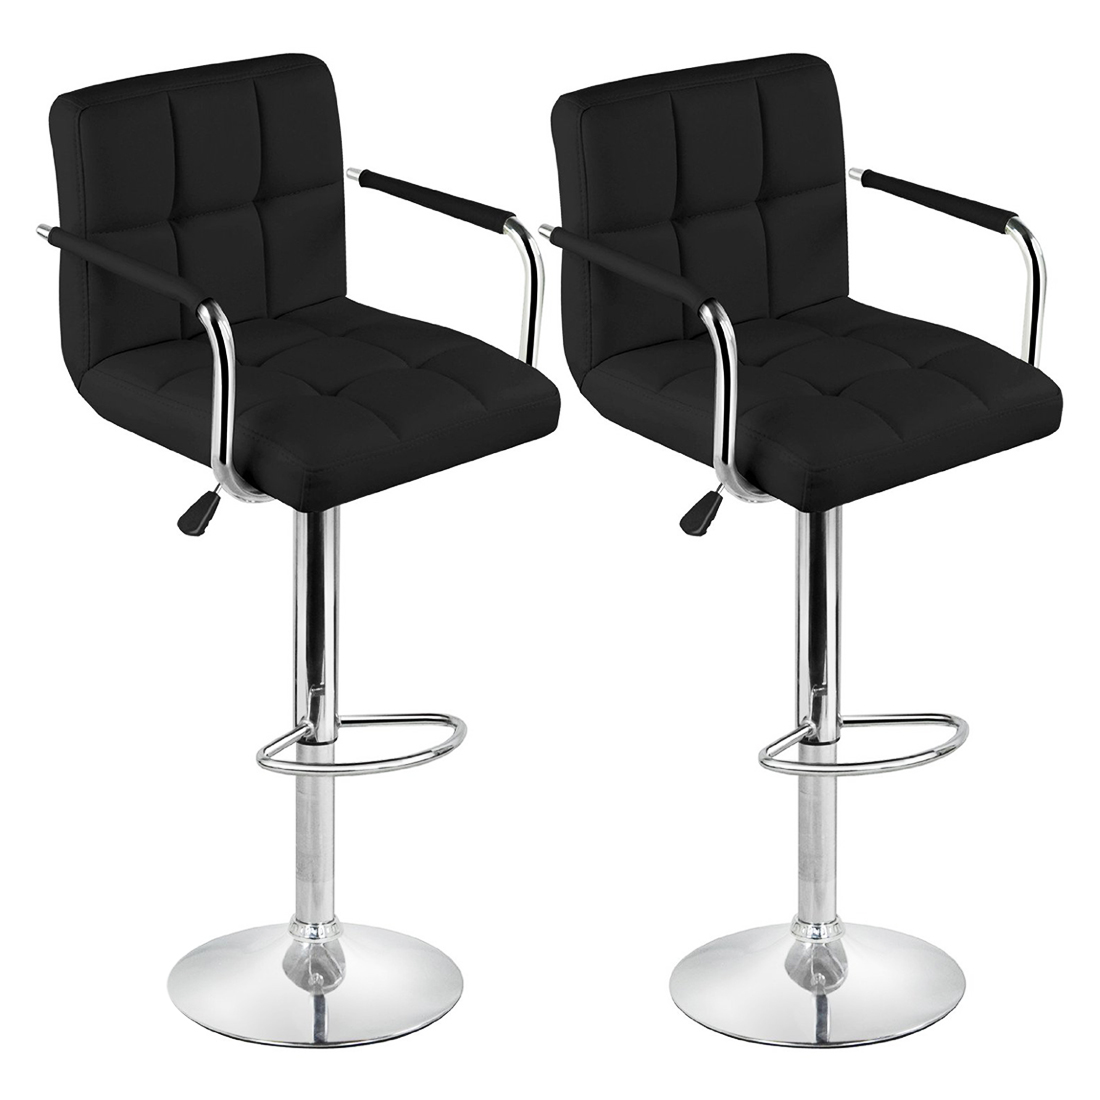 Buy 2 Faux Leather Kitchen Breakfast Bar Stool Bar Stools Swivel Stools Style